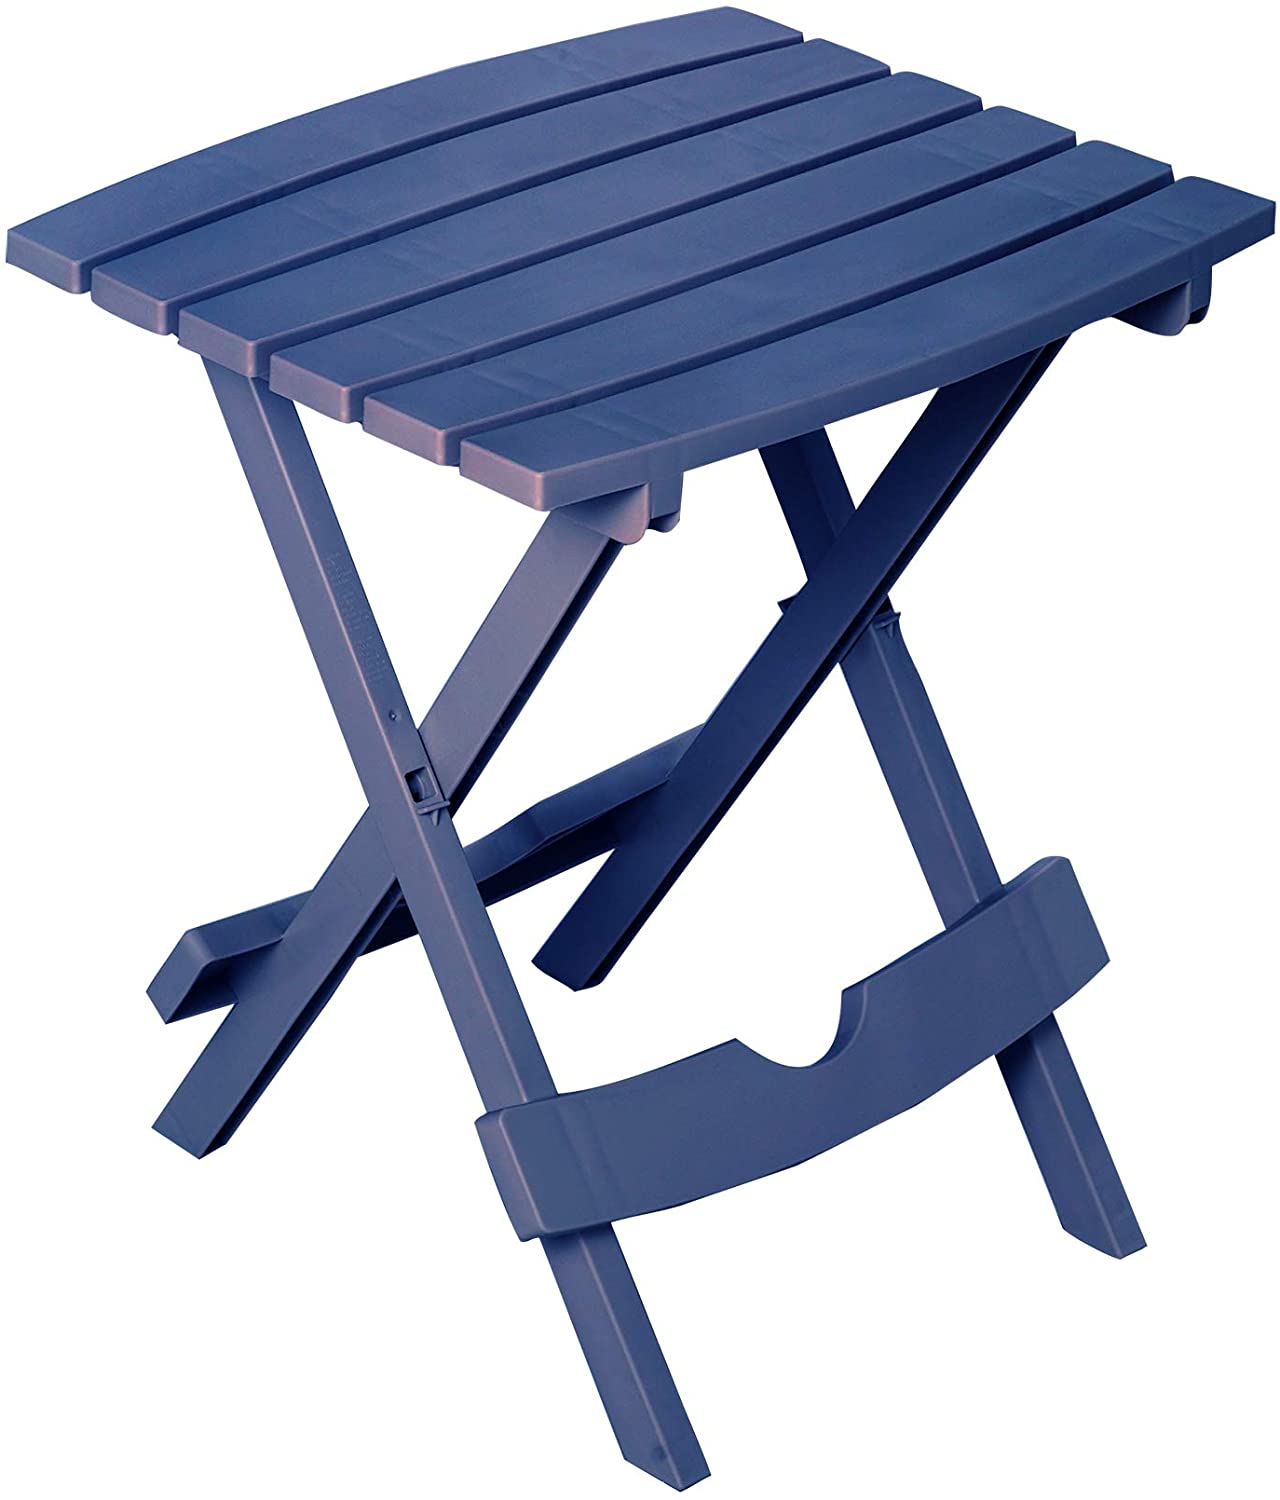 Adams Manufacturing 8510-36-3700 Quick-Fold Side Table, Patriotic Blue